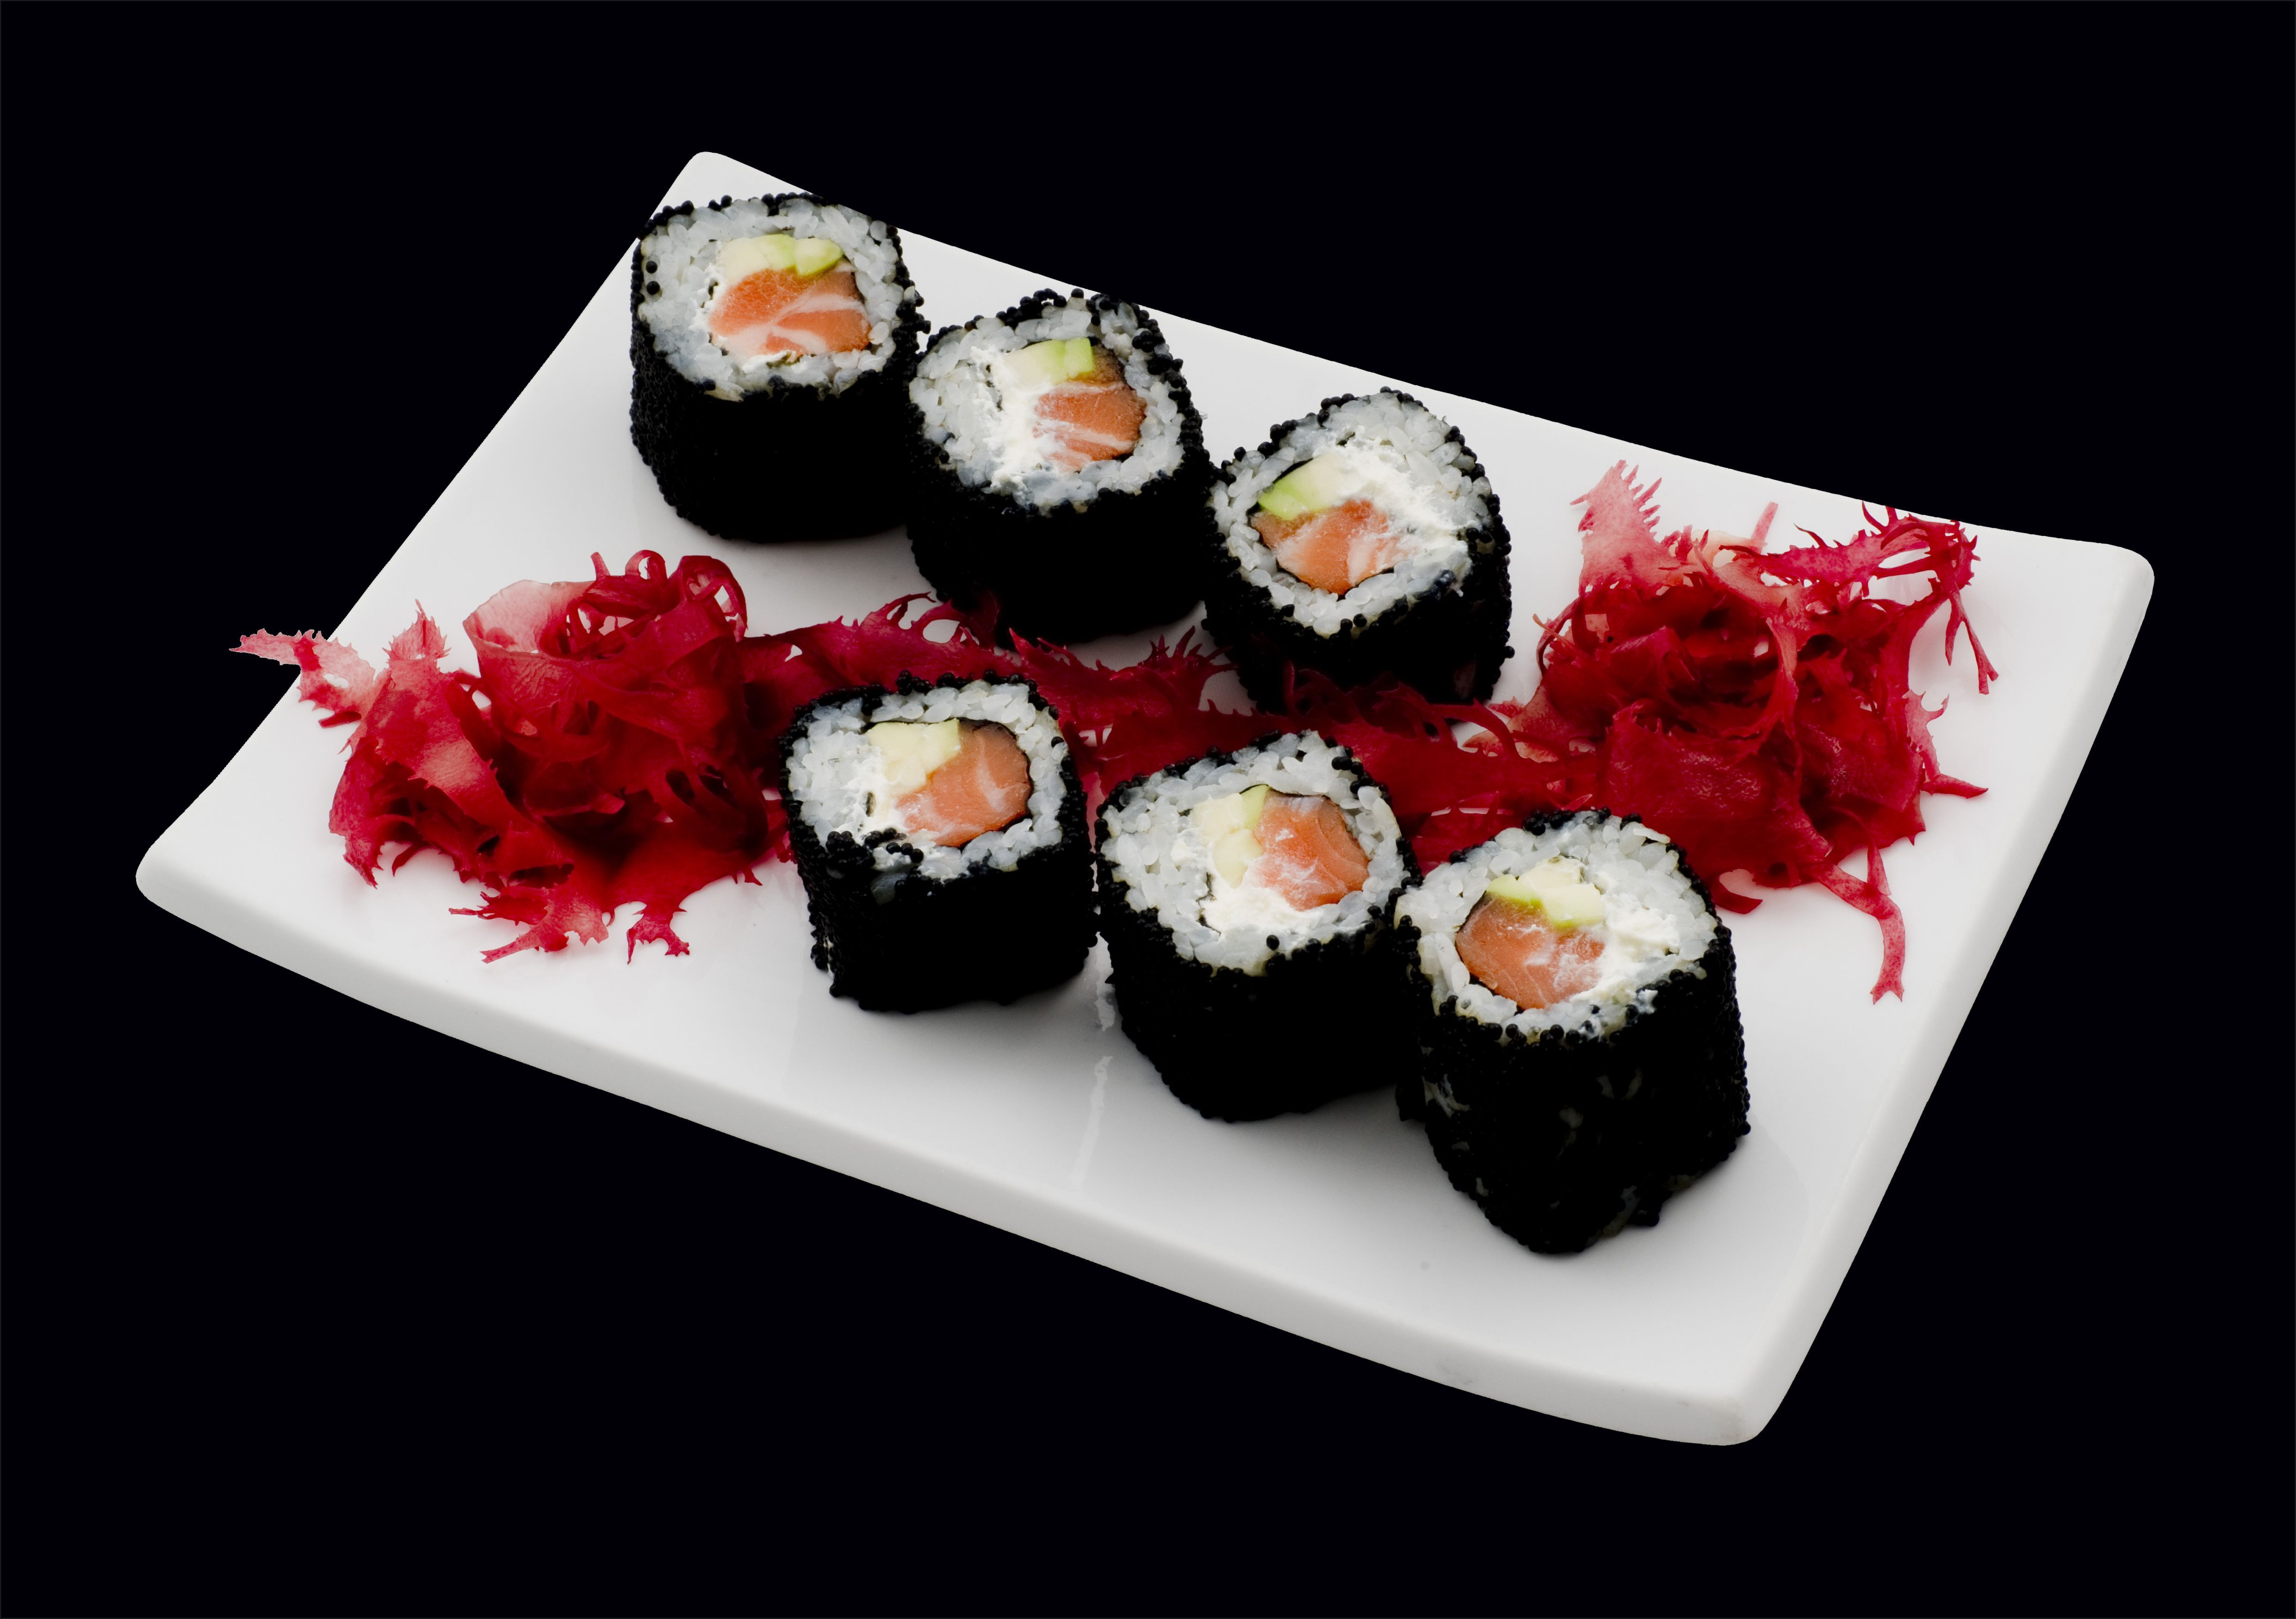 Sushi 4k Ultra HD Wallpaper and Background Image ...